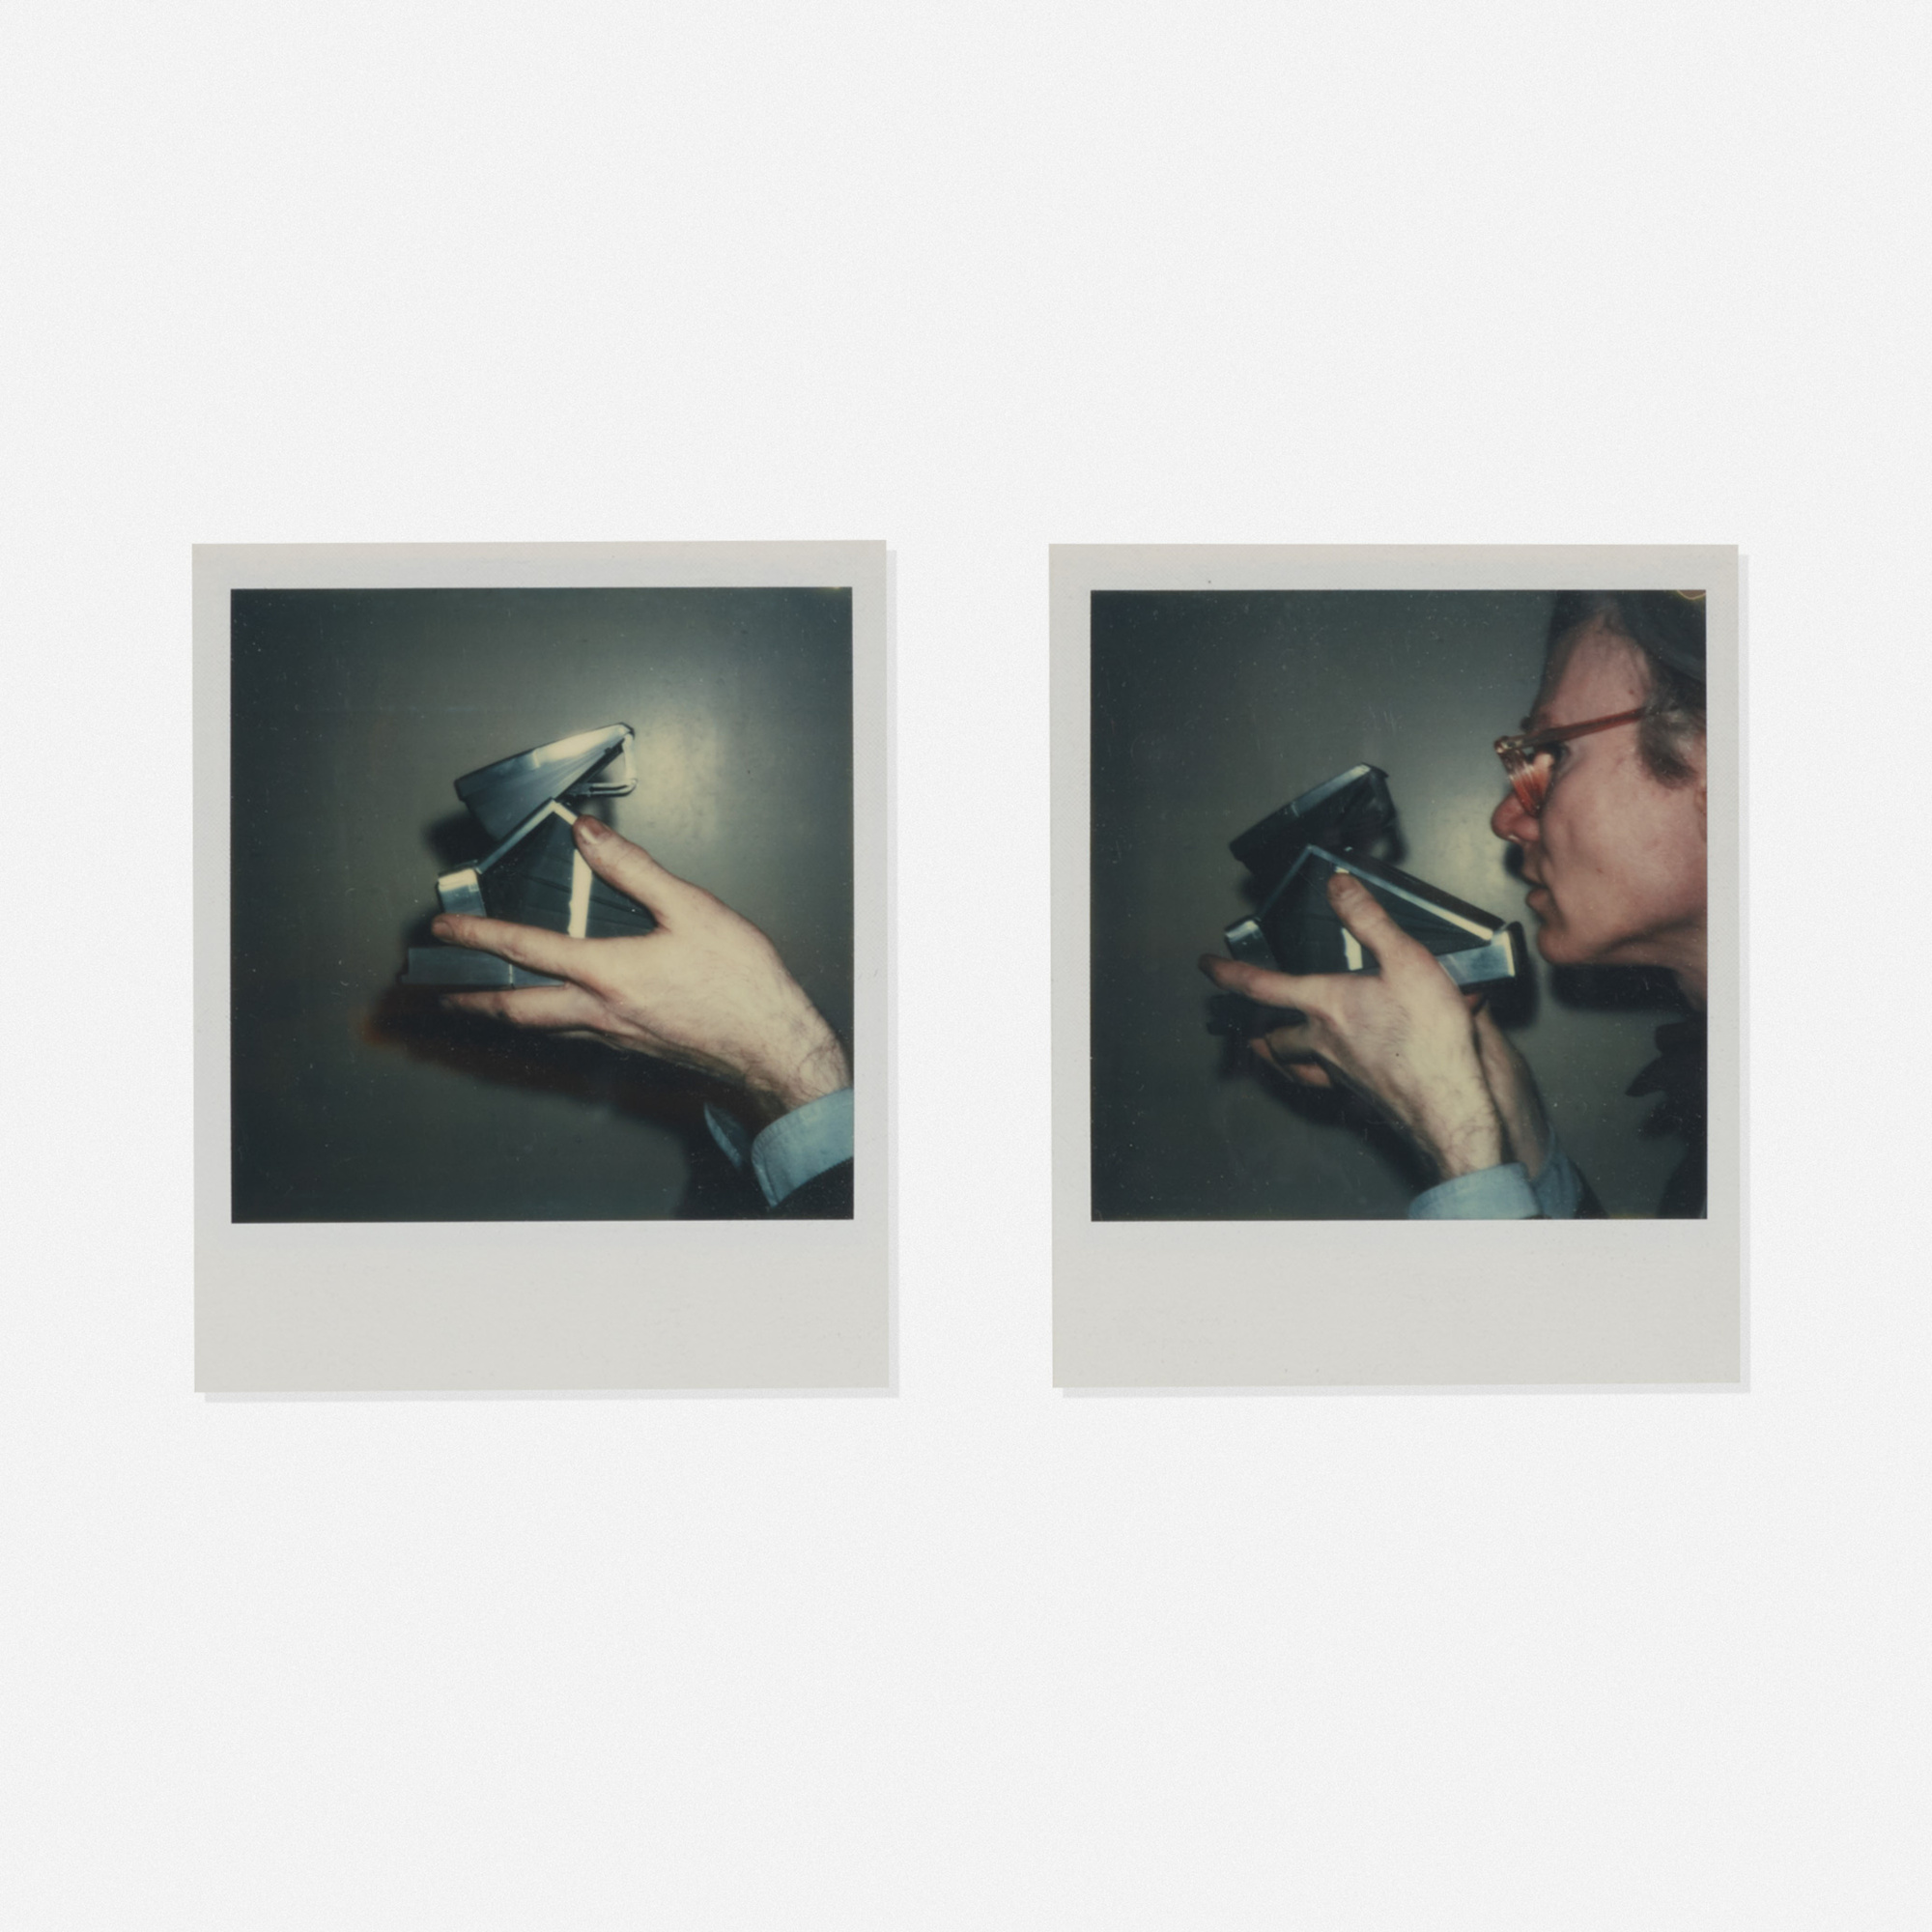 208: Andy Warhol / Self-portrait with camera (diptych) (1 of 1)